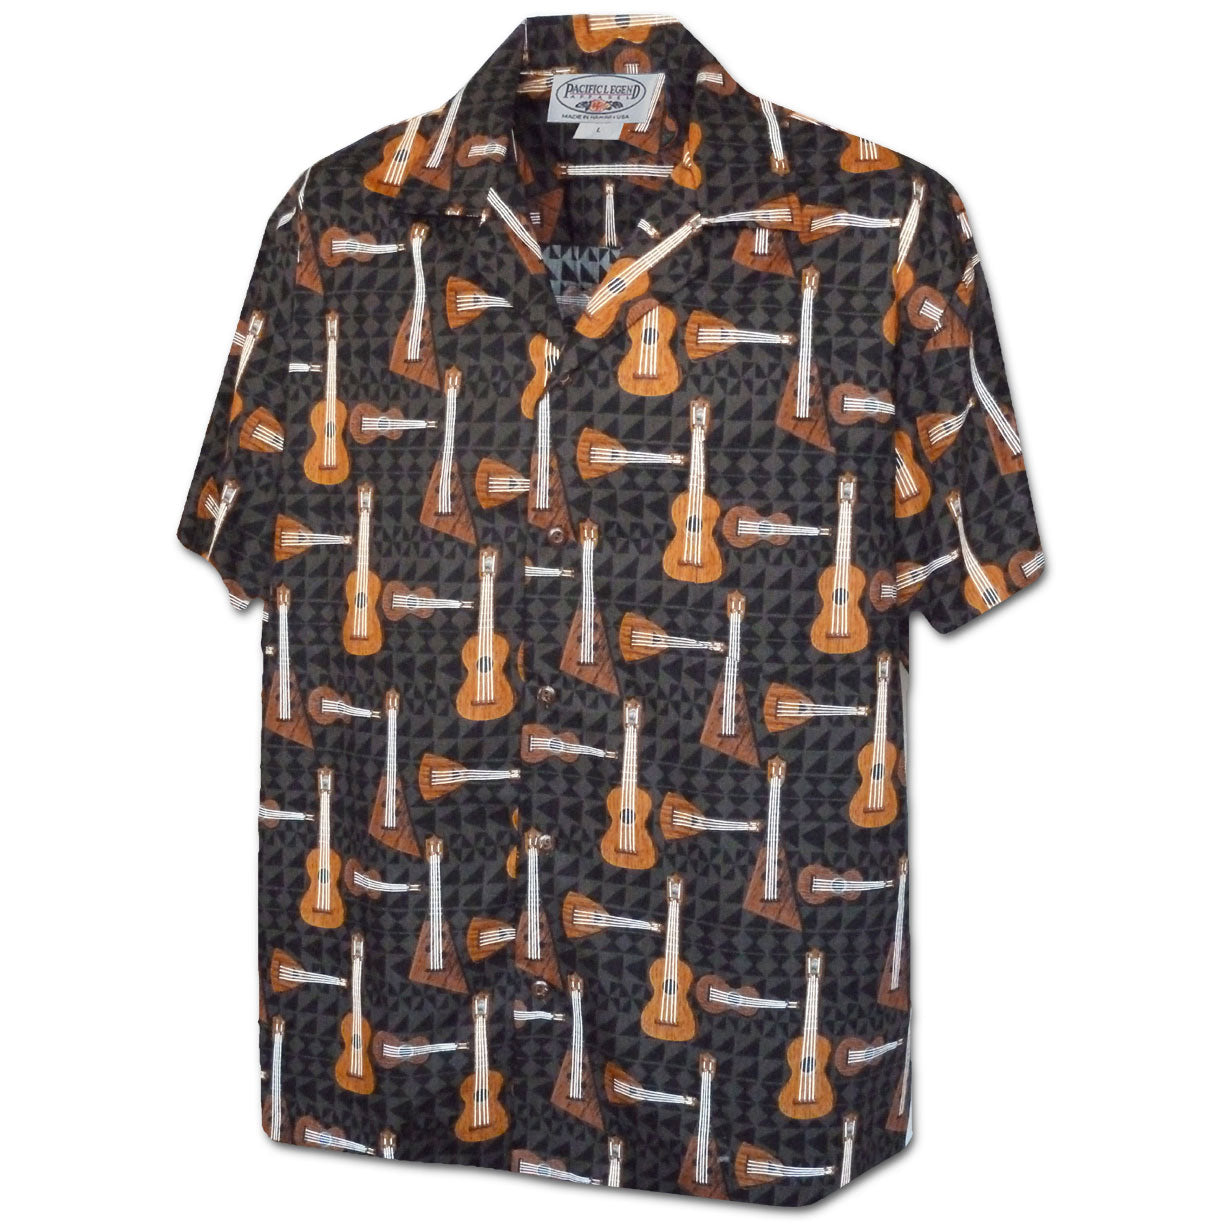 Ukulele Jamster Black Hawaiian Shirt